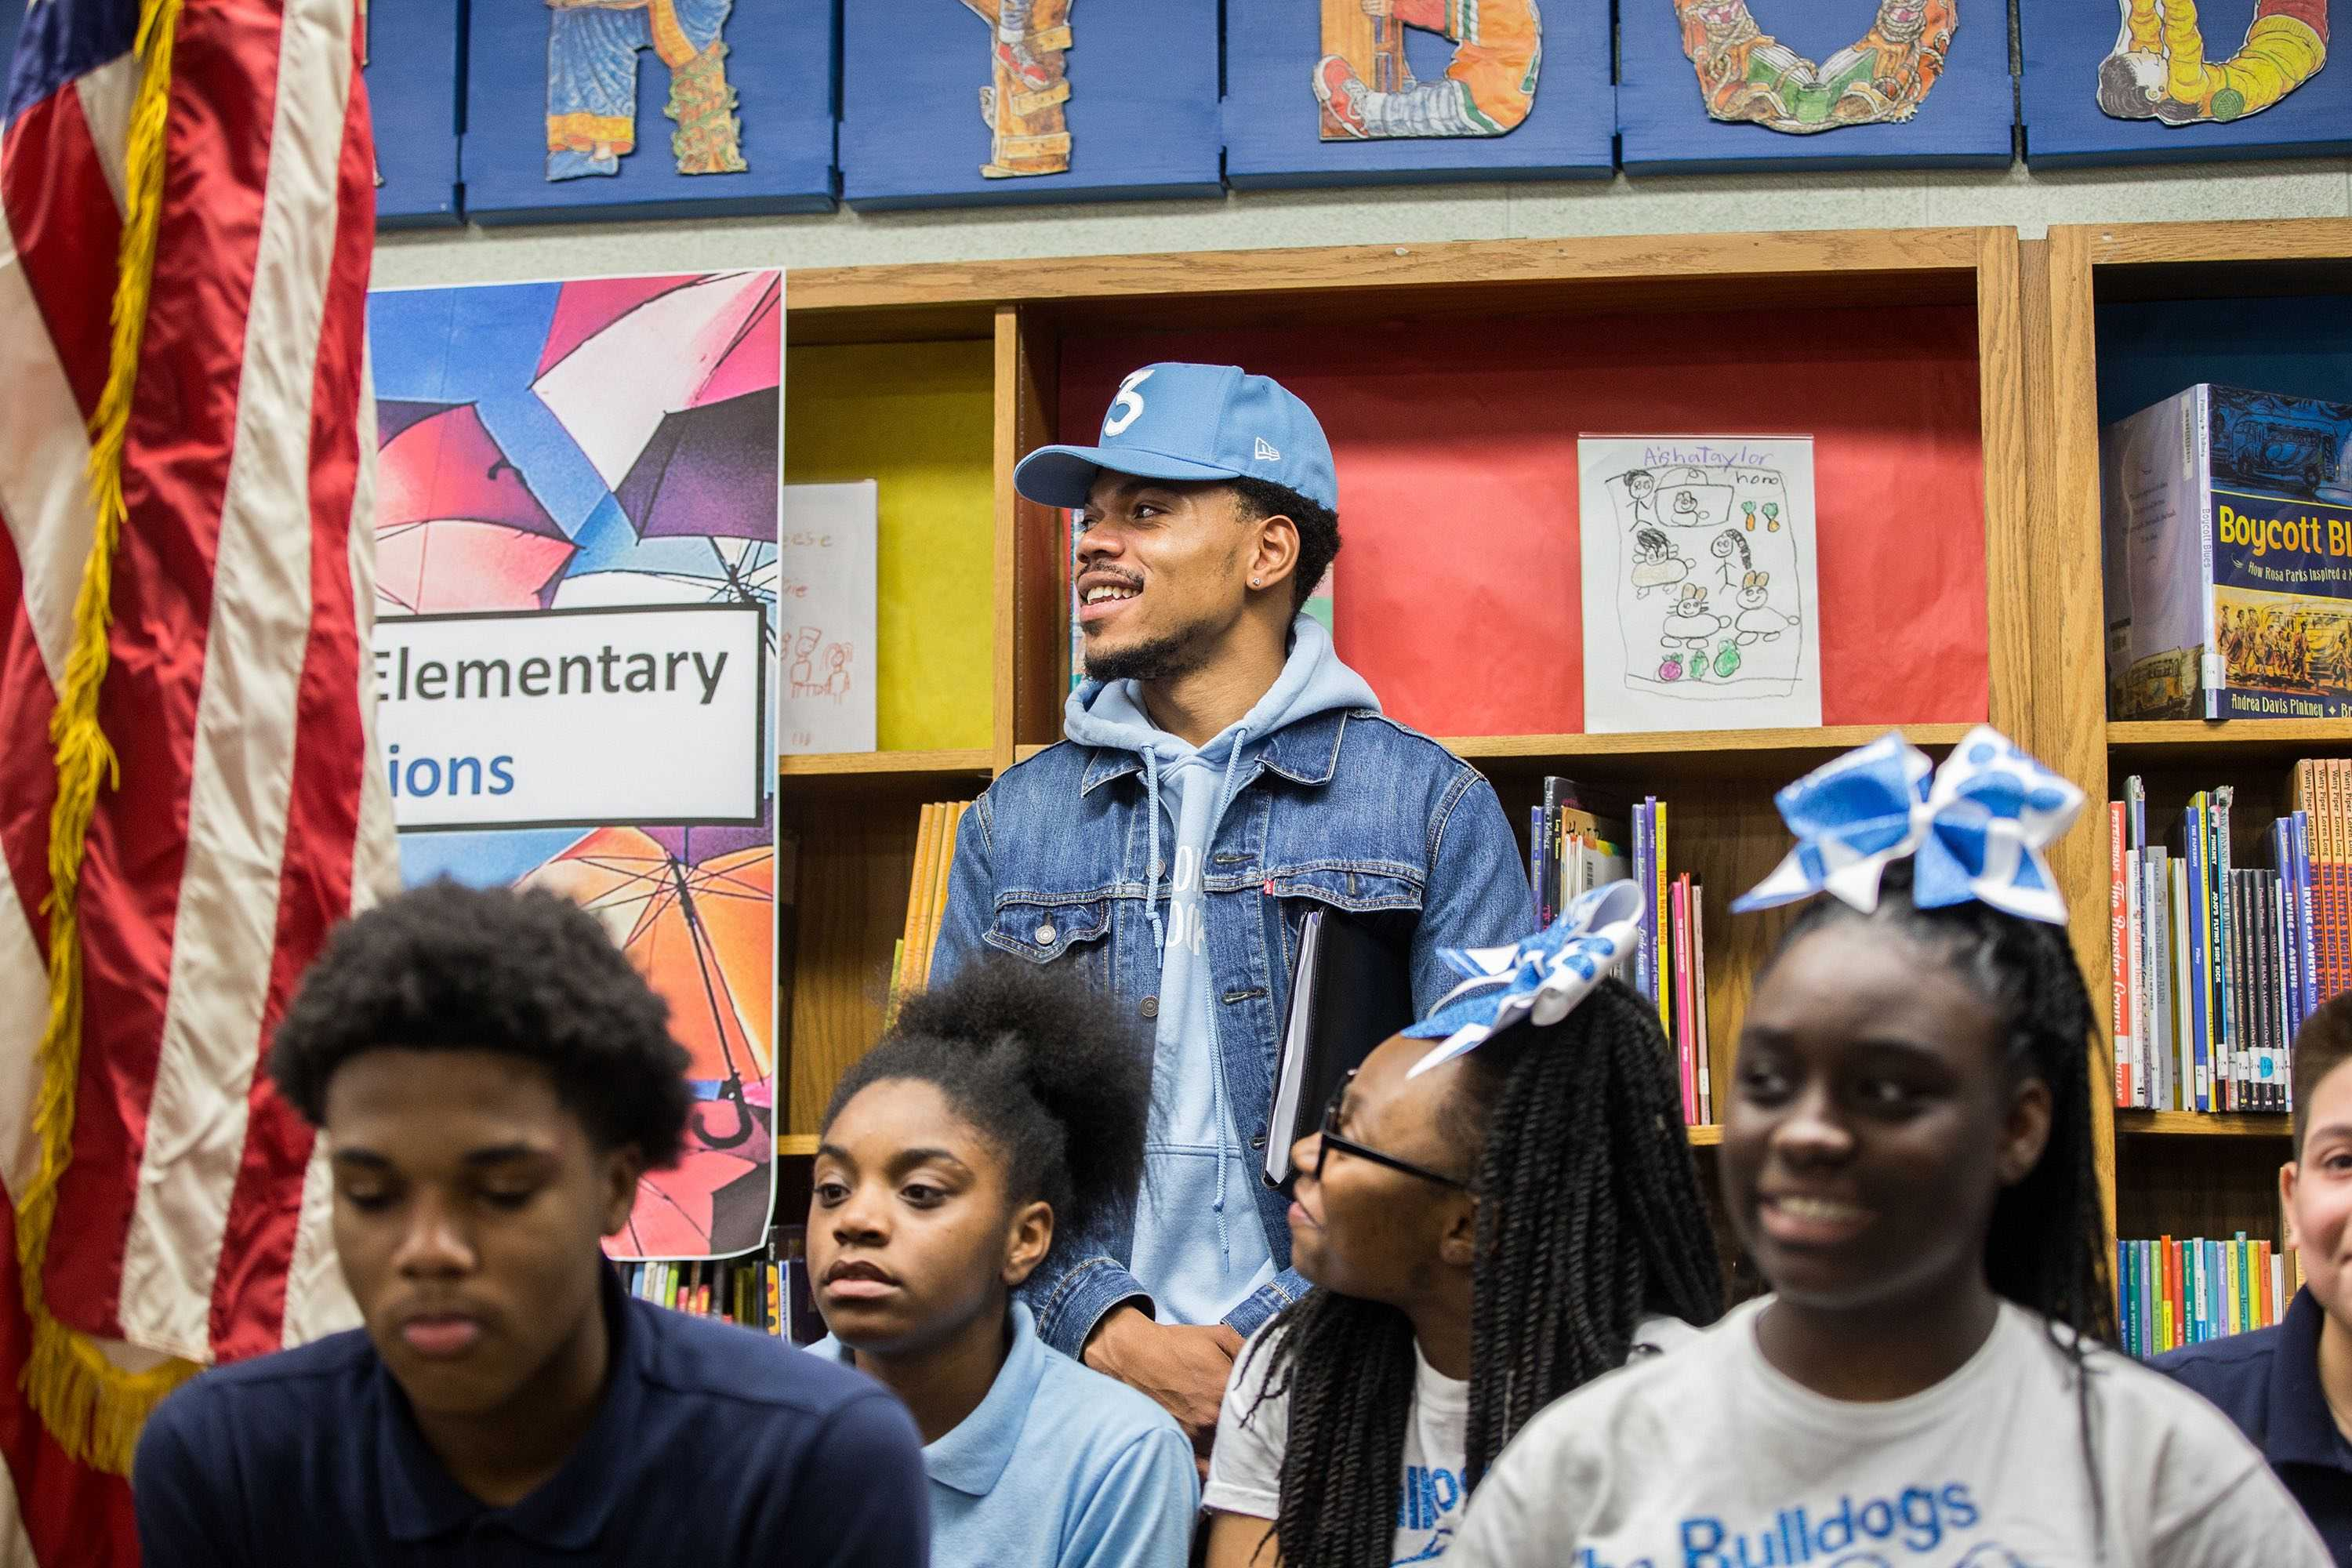 Chance the Rapper holds a press conference at Westcott Elementary School in Chicago's Chatham neighborhood on March 6, 2017. (Zbigniew Bzdak | Chicago Tribune | TNS)